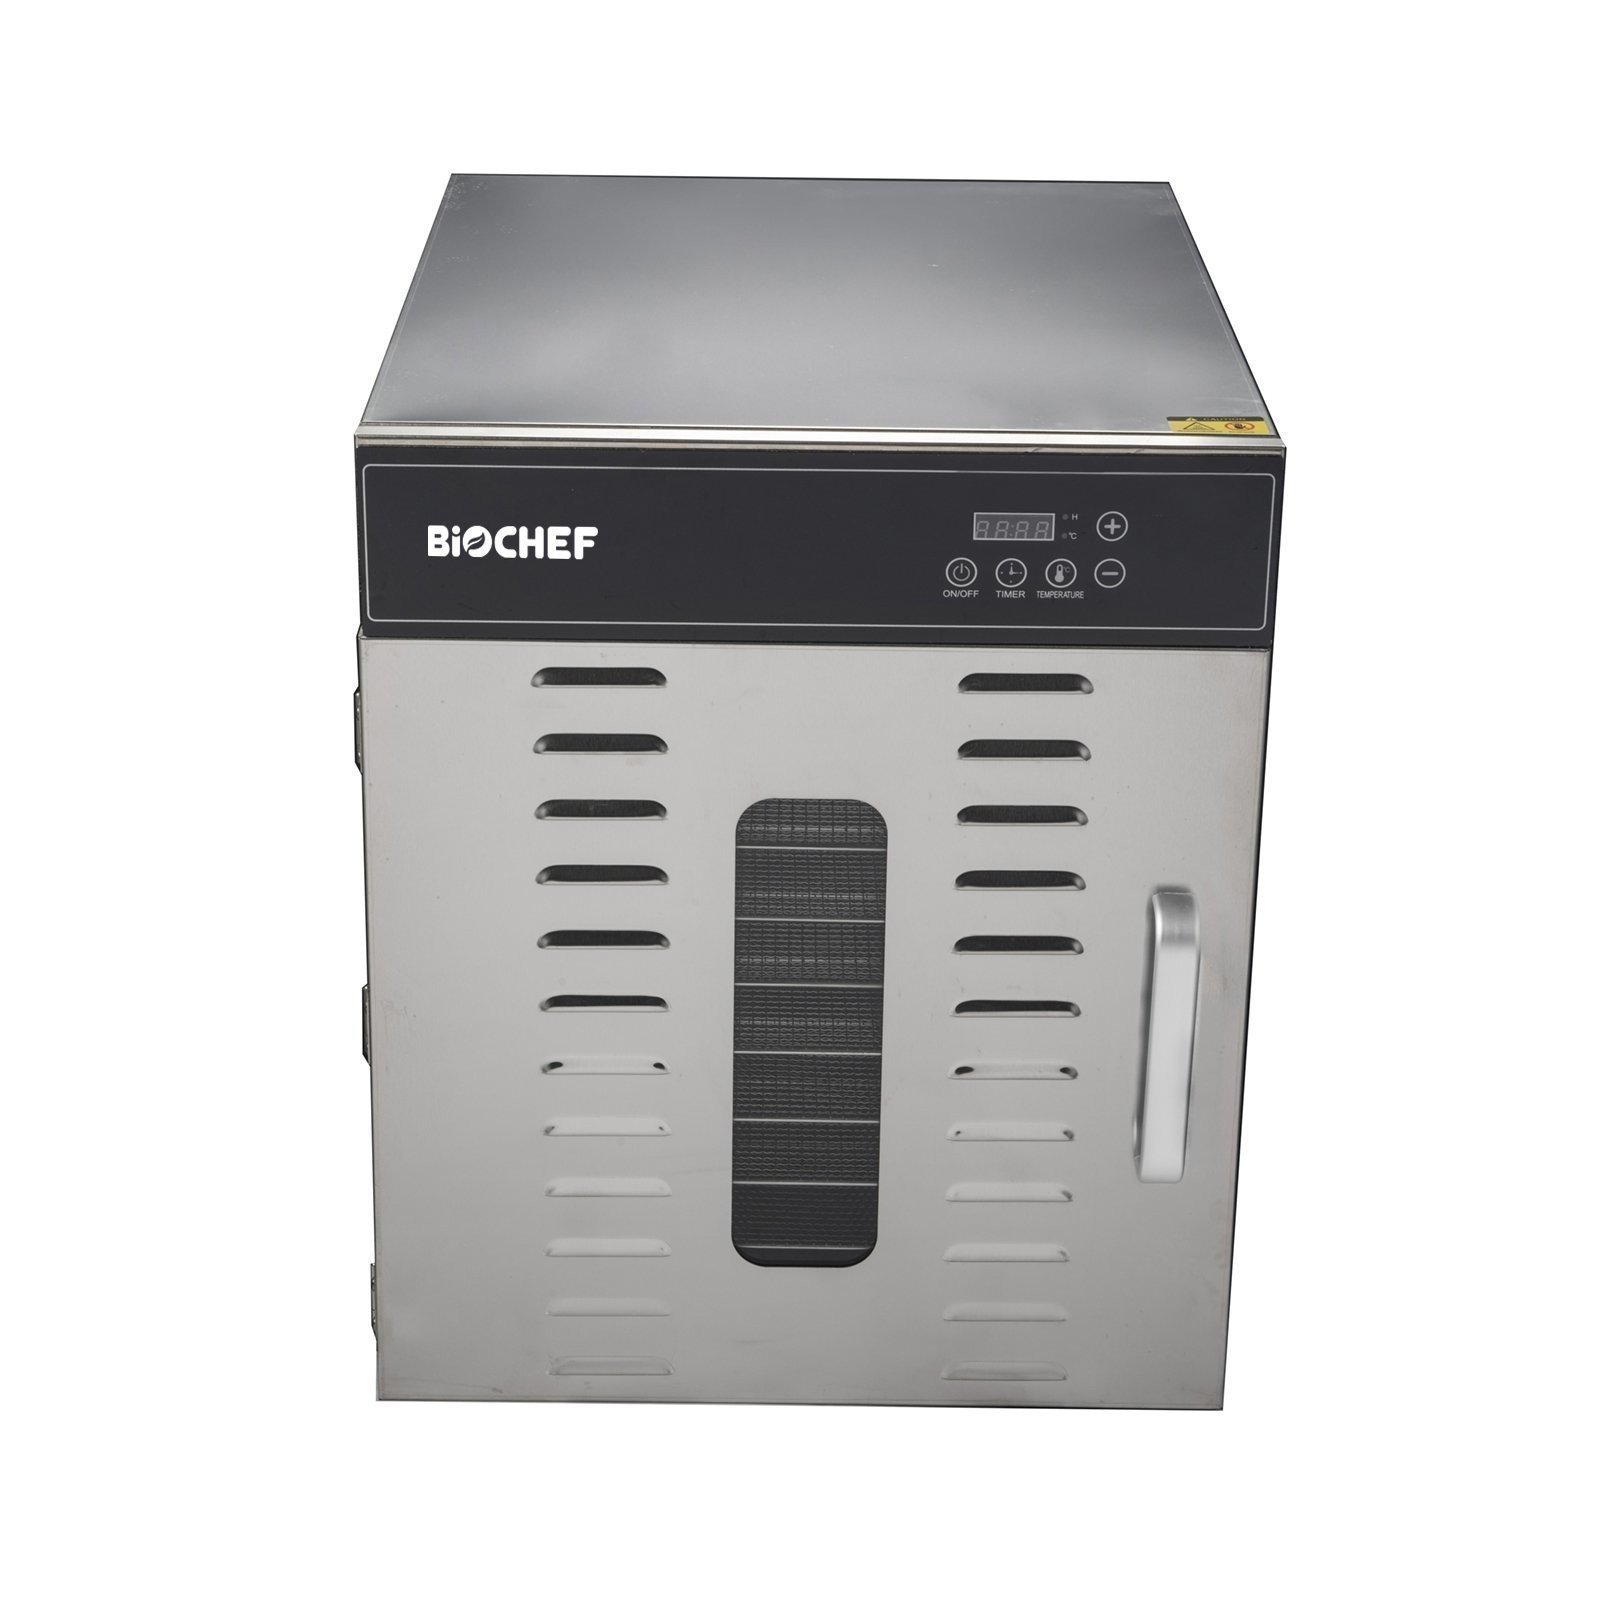 BioChef Commercial 10 Tray Food Dehydrator front